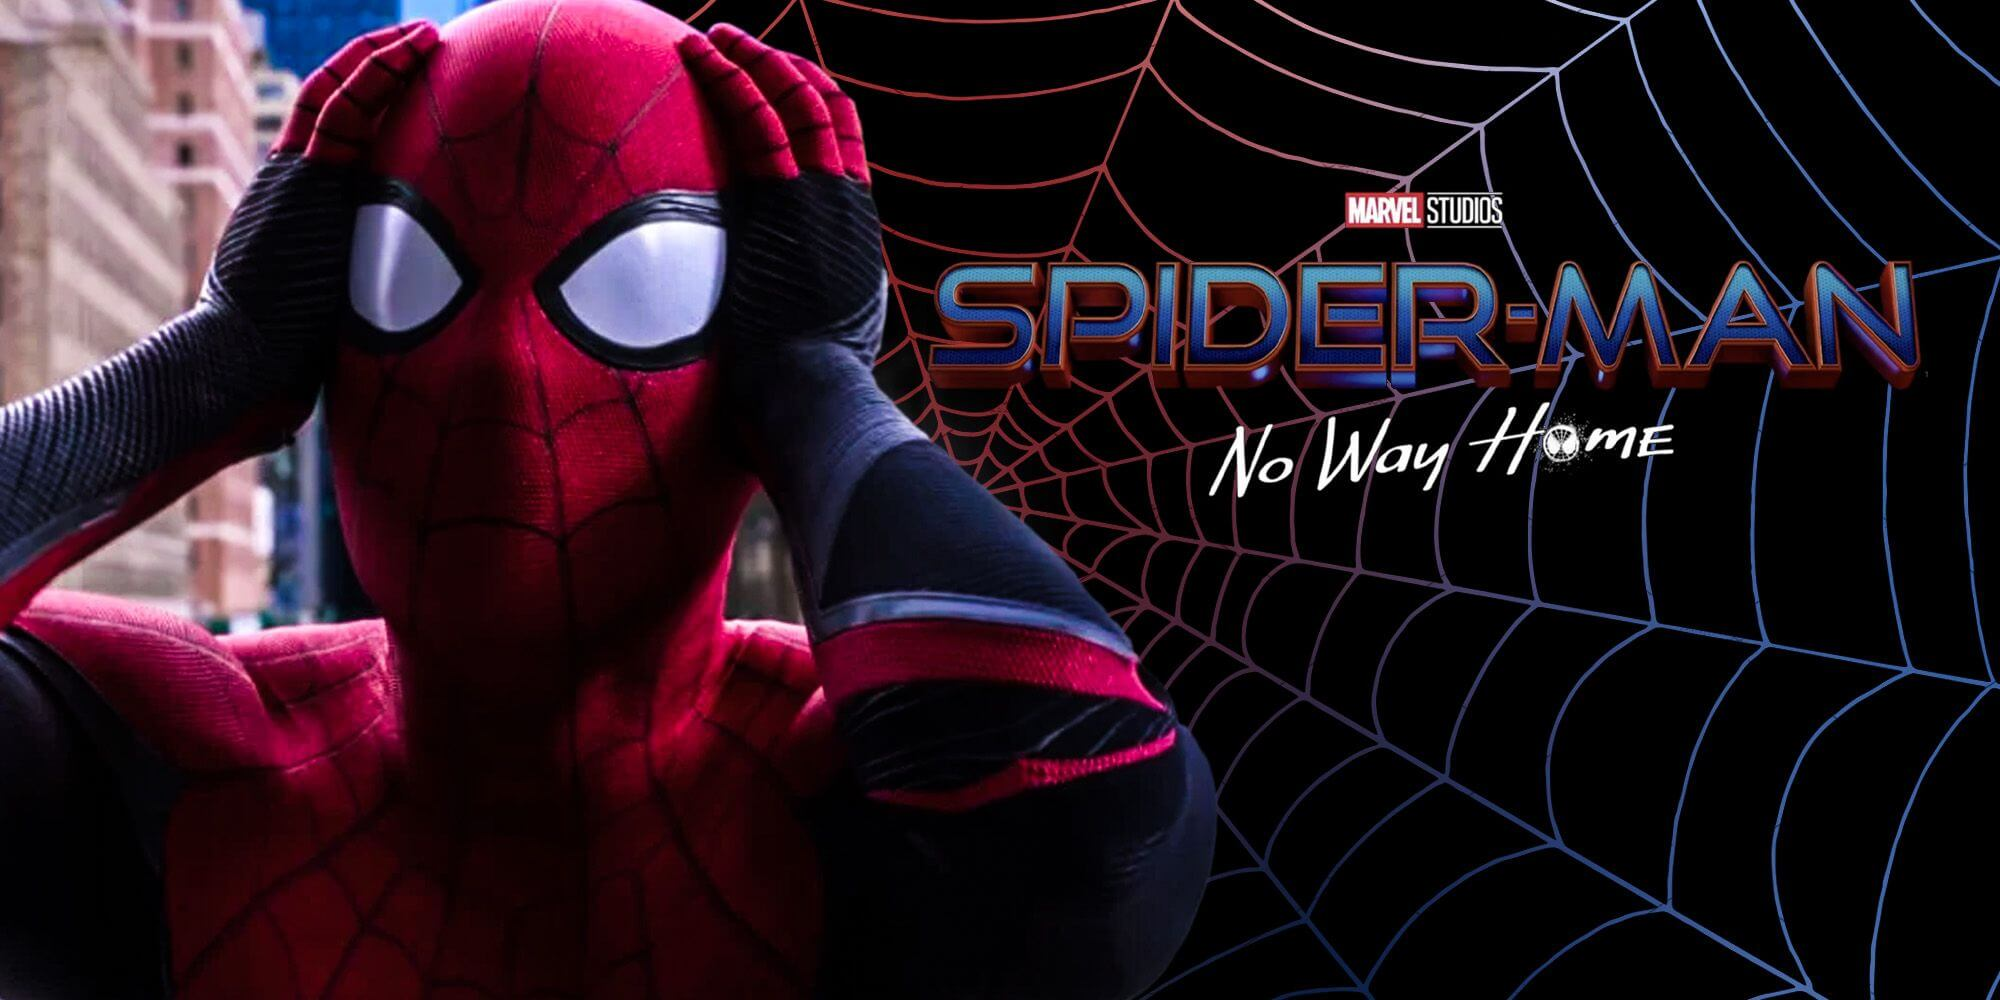 'Spider-Man: No Way Home' Trailer Rumored to Release Tomorrow